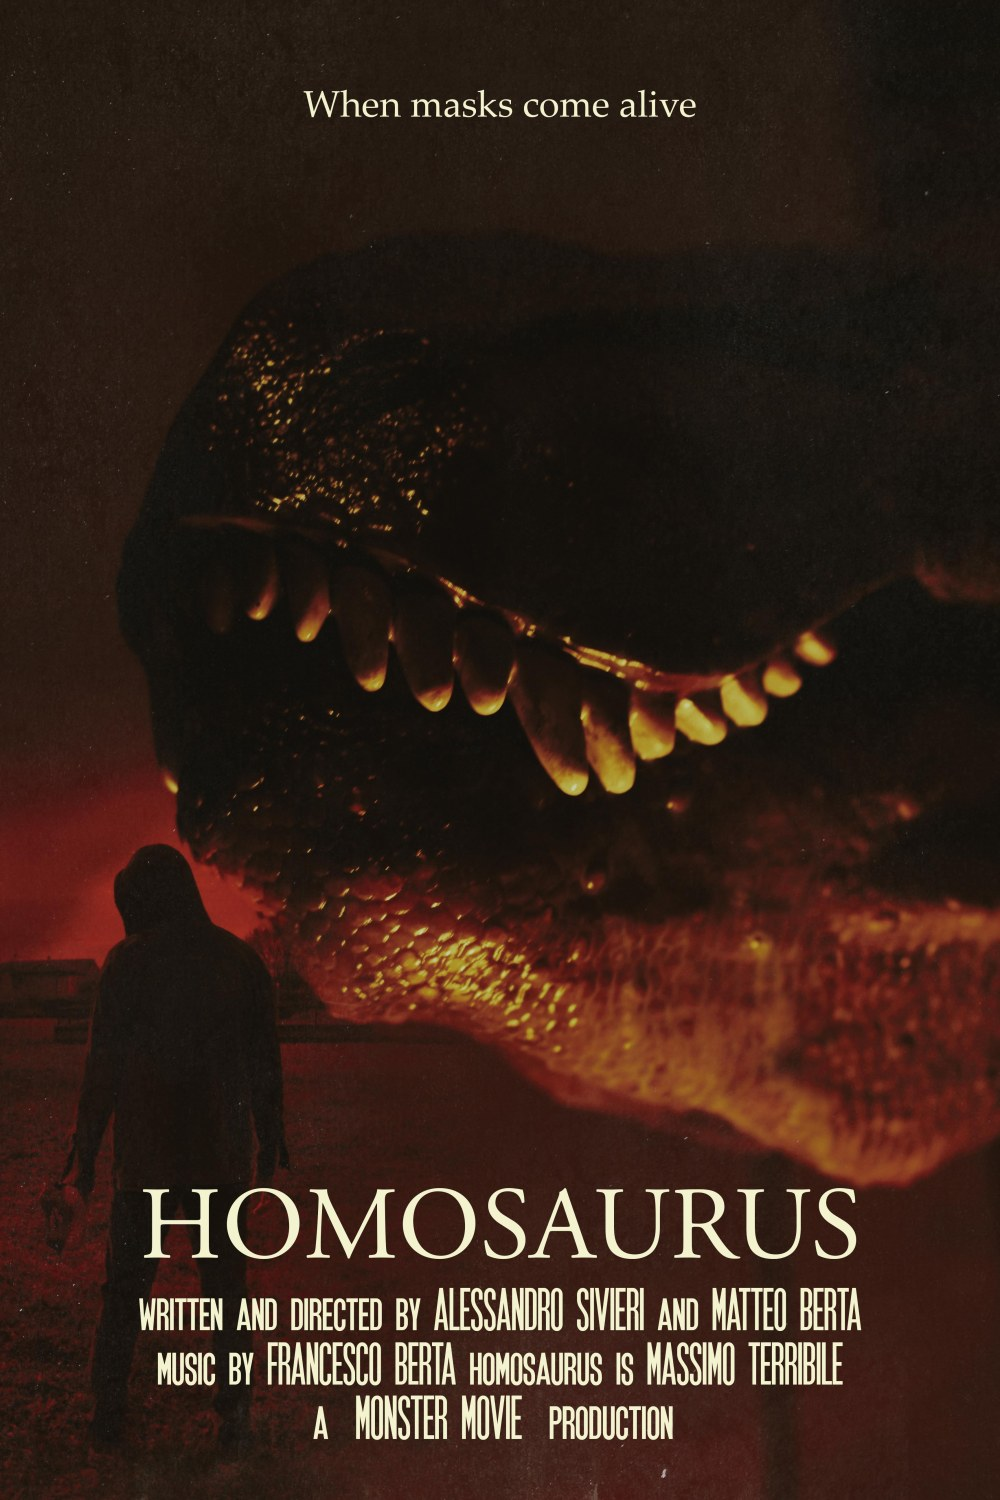 Homosaurus_Monster_Movie leggero